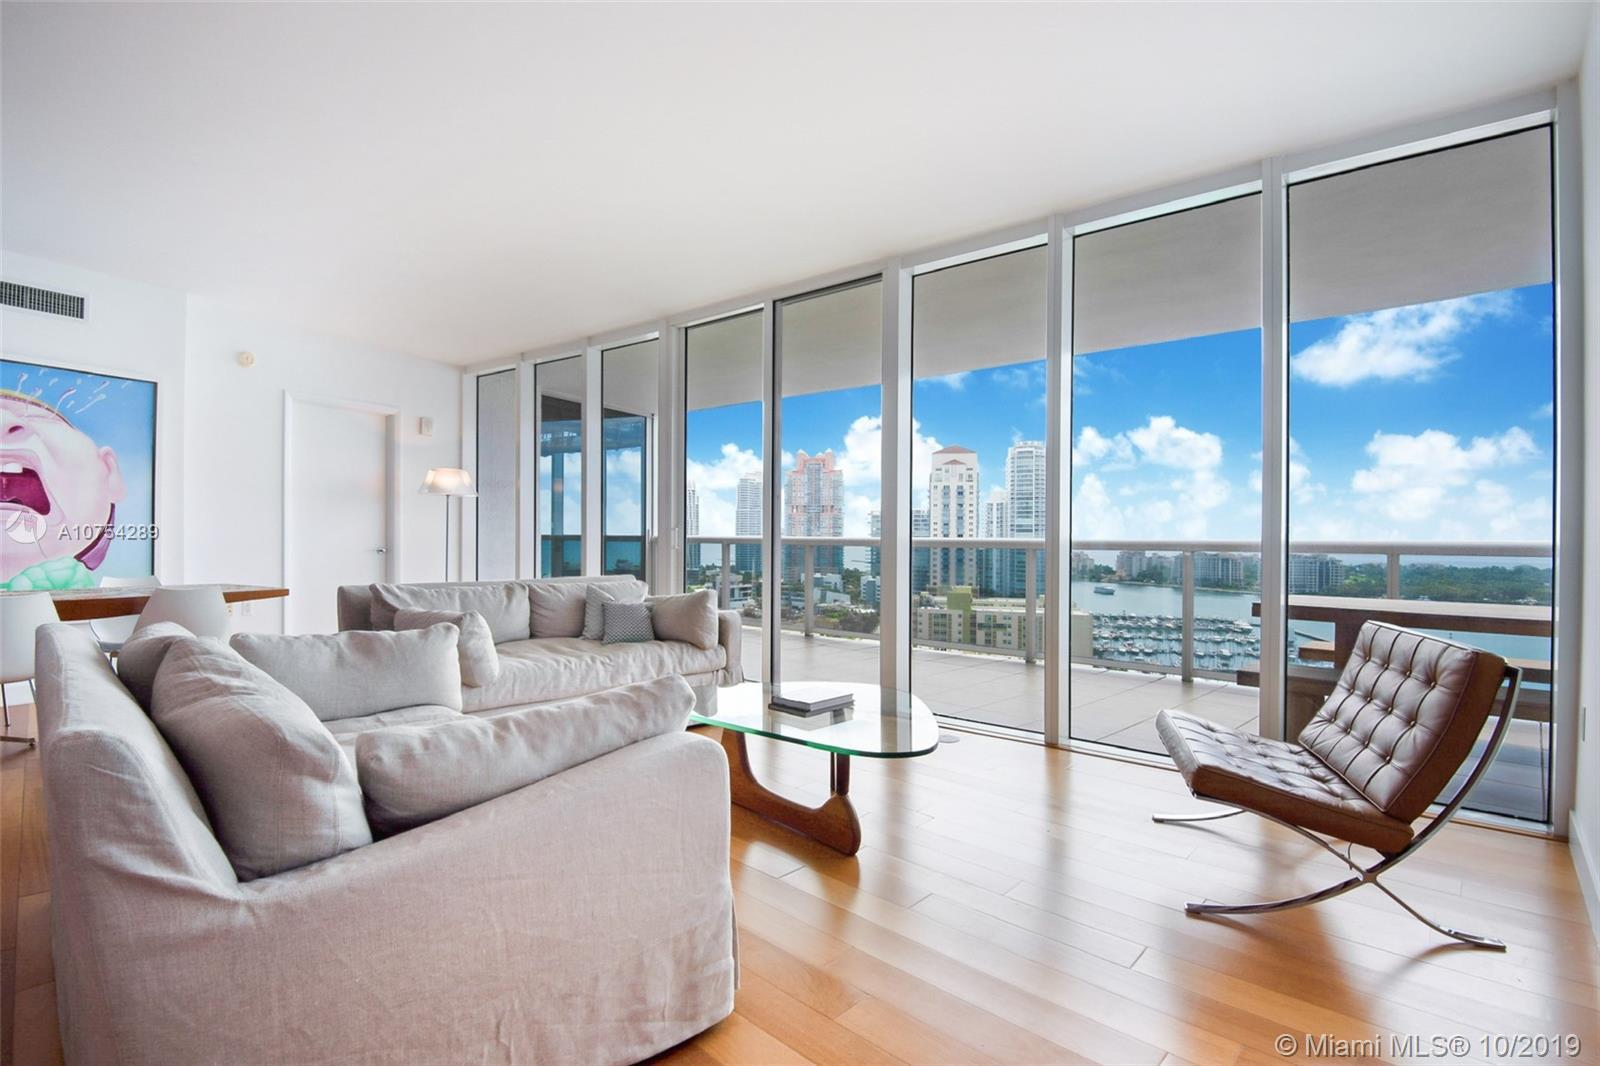 If water views are what you love, then this 2/2.5, 1600 sqft apartment at Murano Grande in South Bea